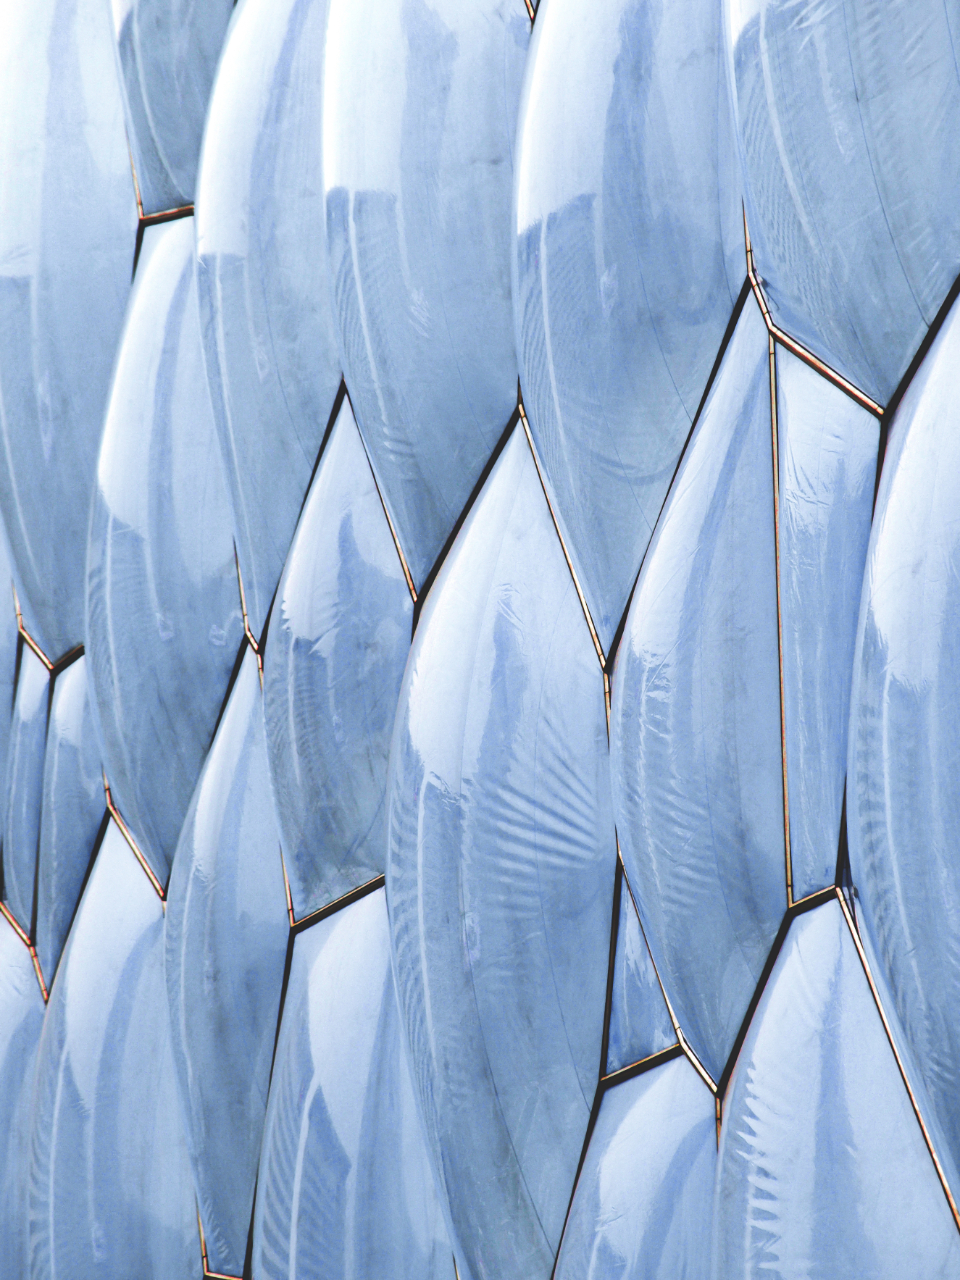 futuristic texture pattern shiny abstract plastic tech shape graphic light bubble facade surface wall